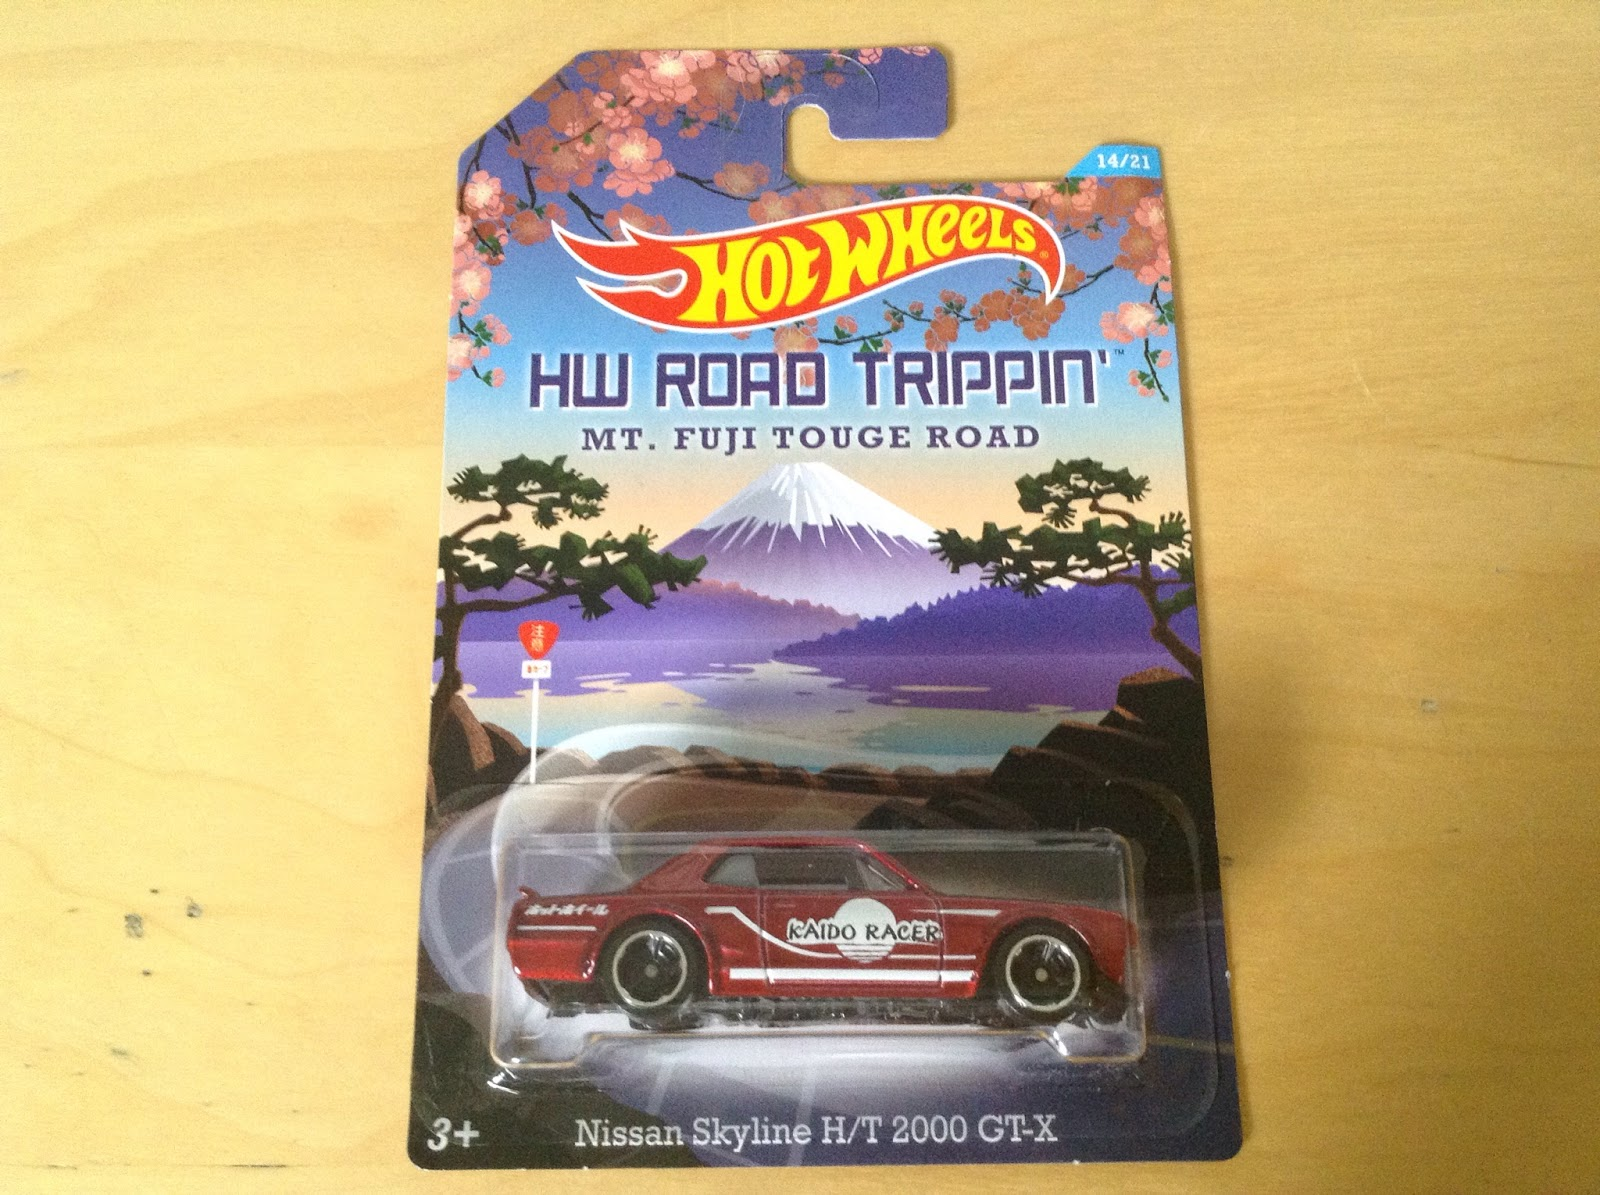 ... represents the Mt. Fuji Touge Road in Japan. Even the card art looks fantastic. Overall, that red and white combination, the national colors of Japan, ...